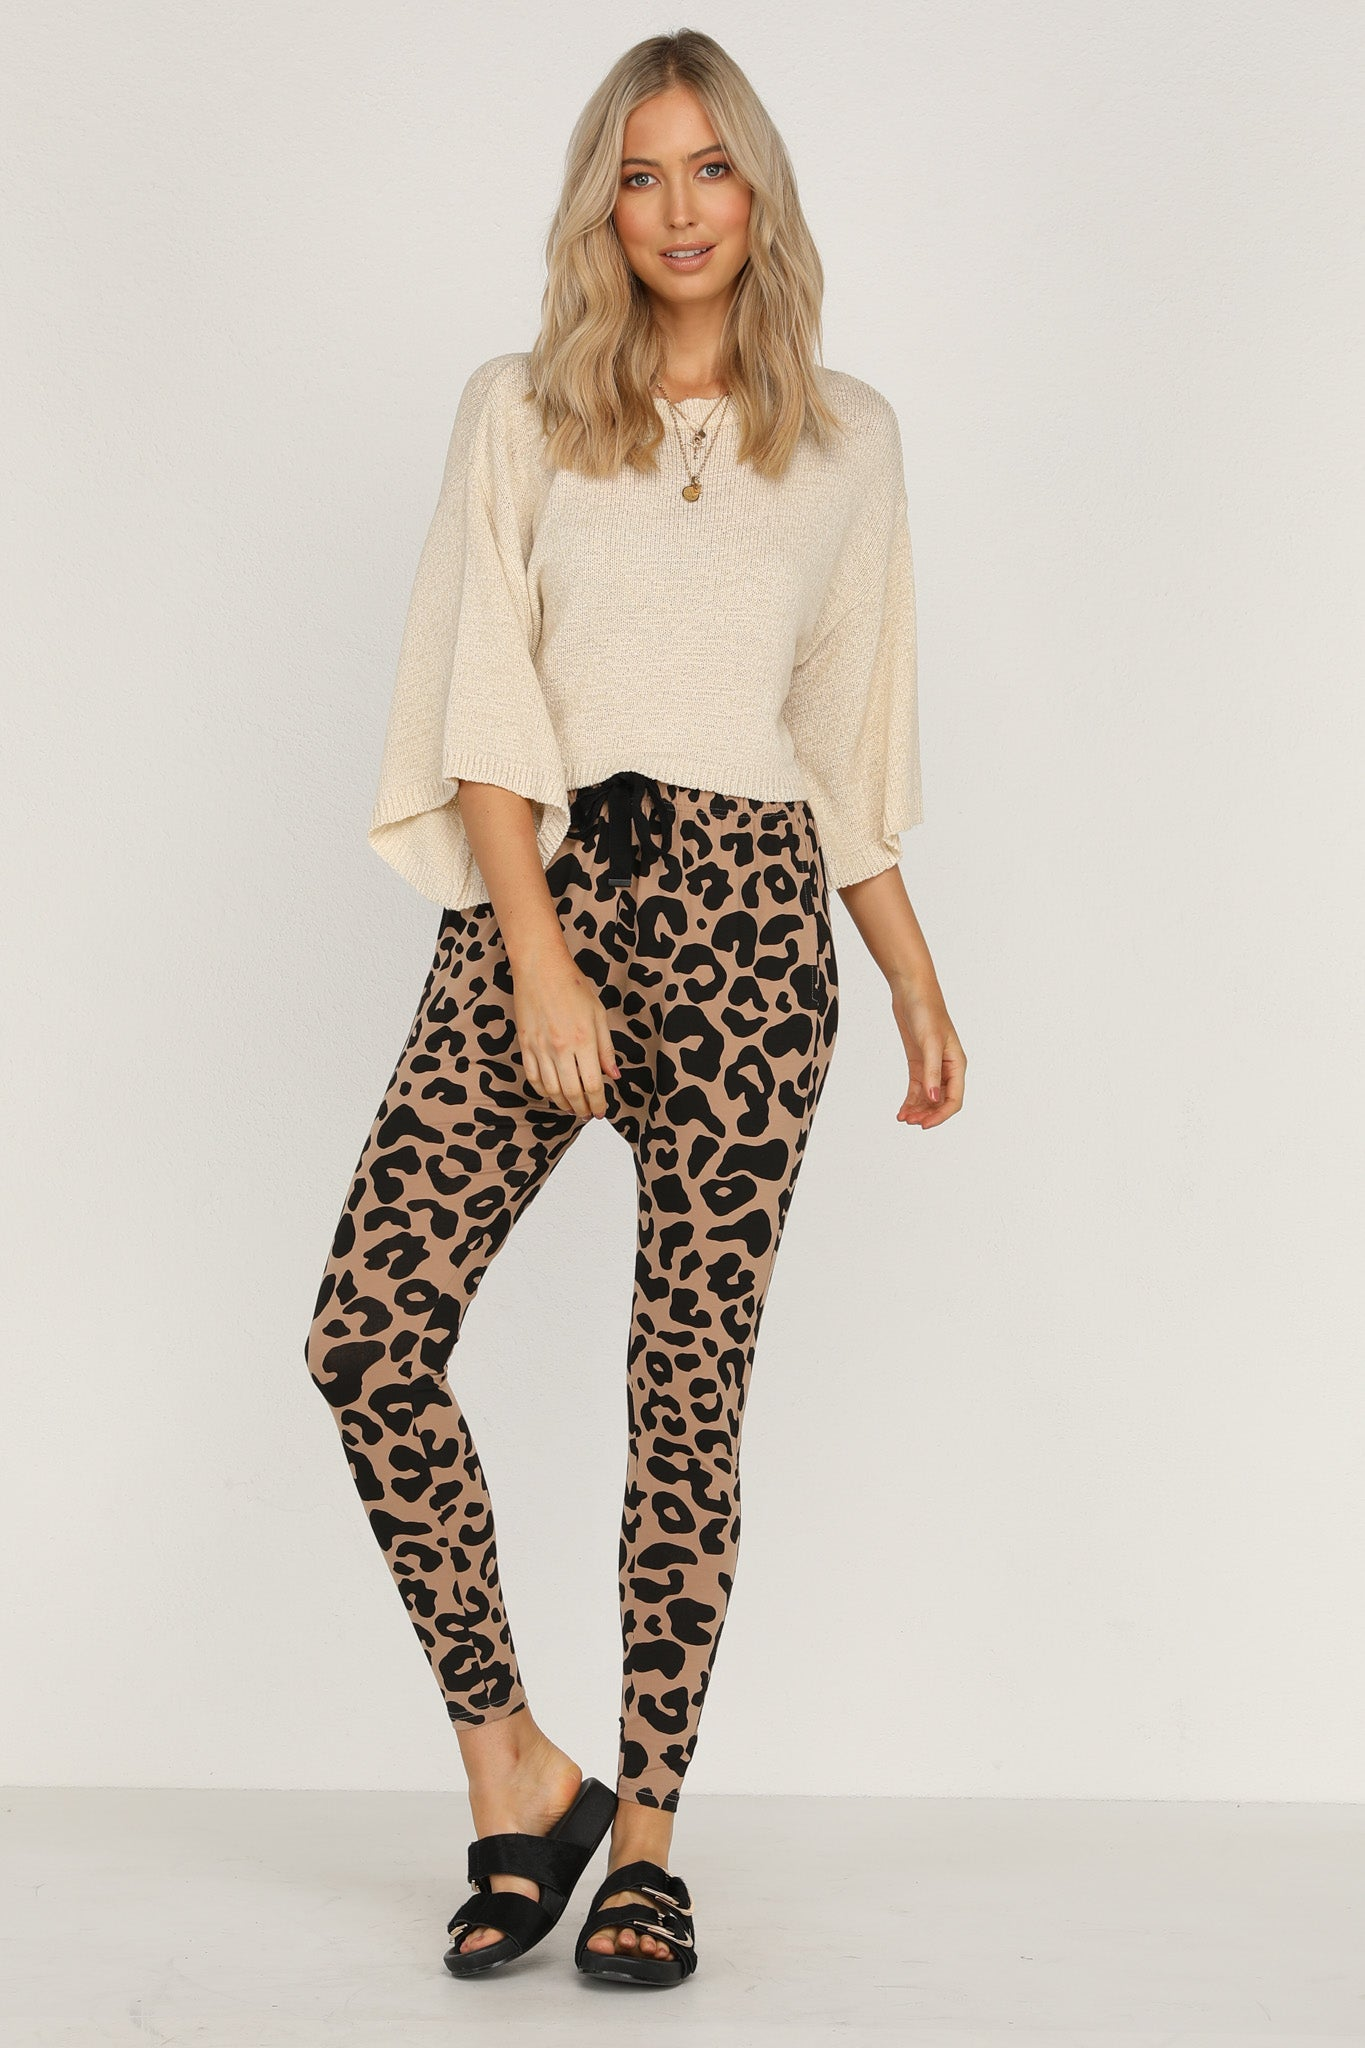 Jordan Pants (Tan Leopard)